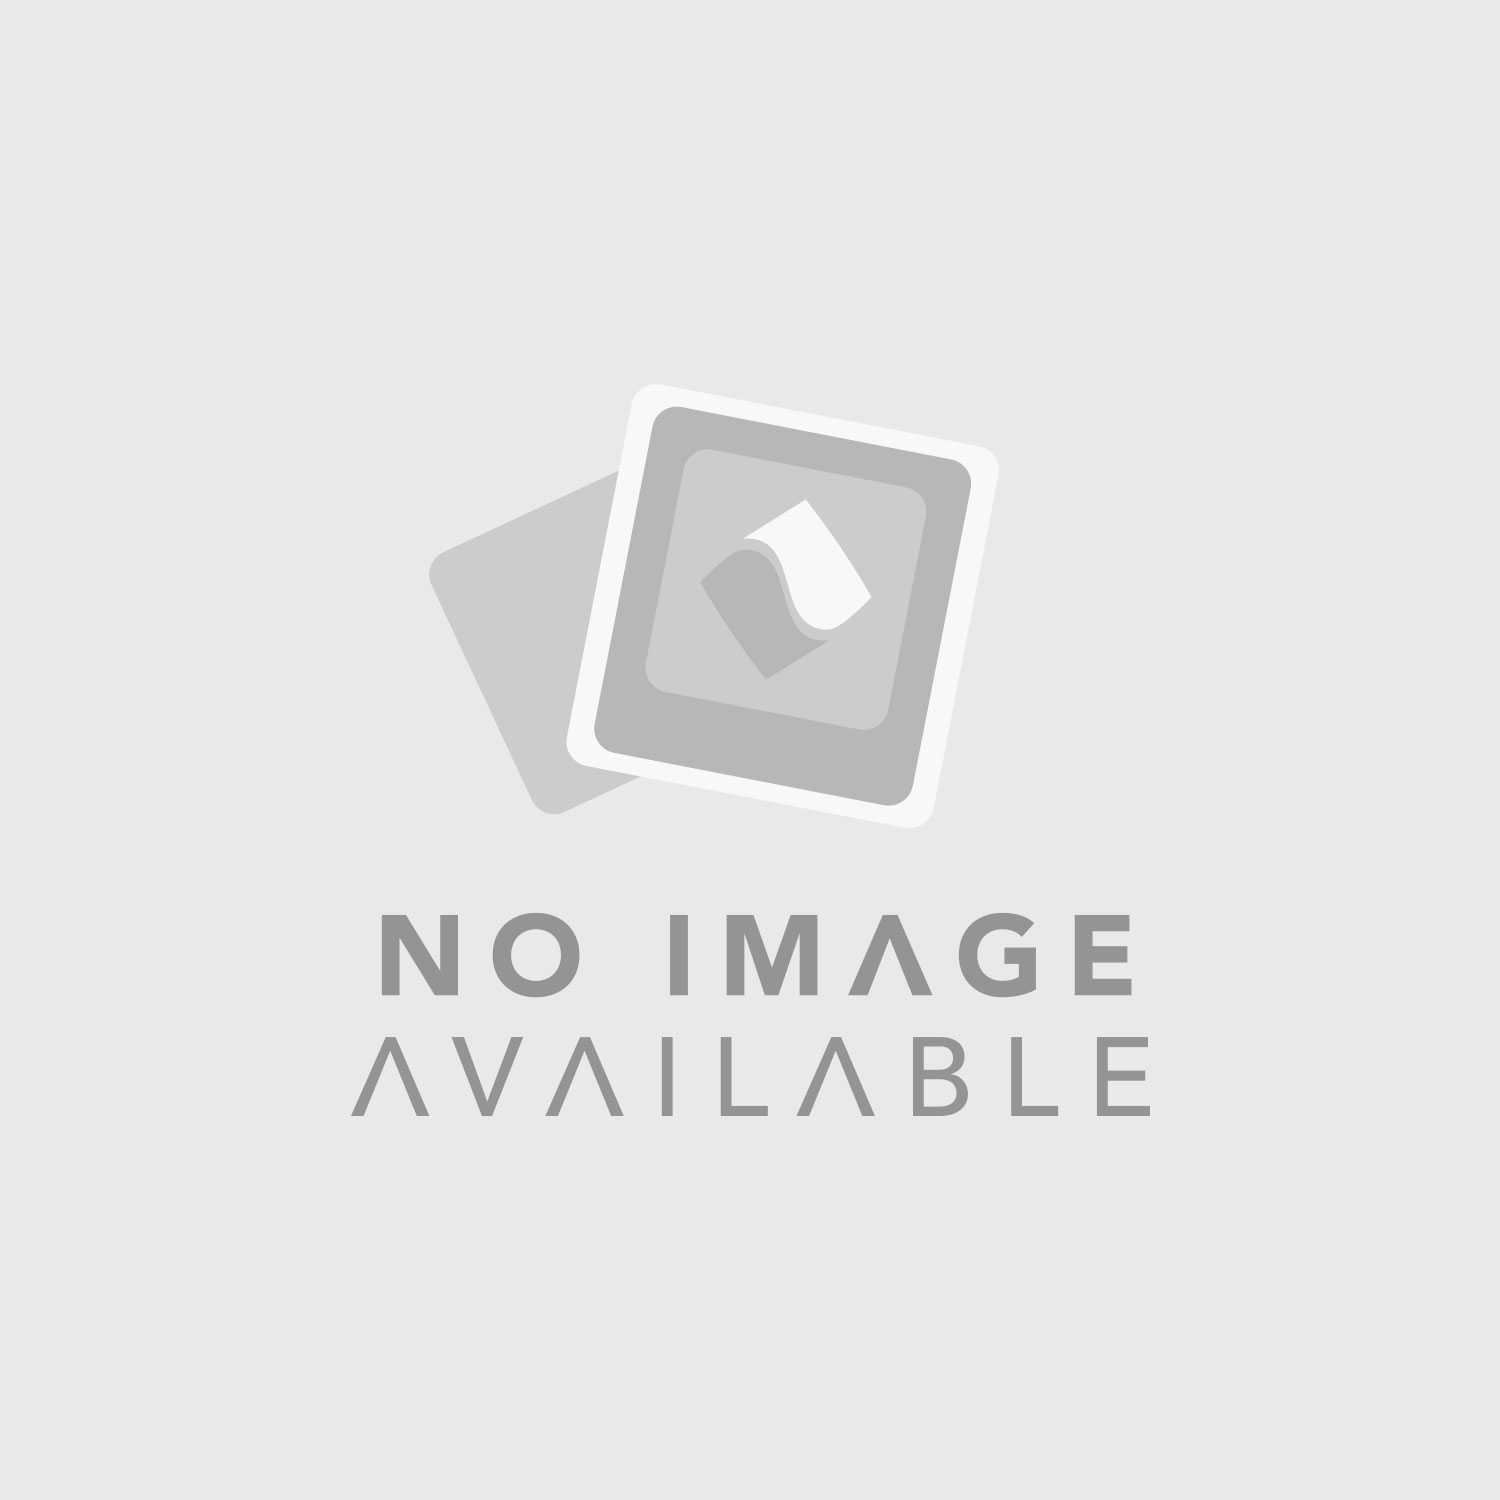 RDL D-AVMB2 Audio and Video Monitor BNC Panels (White)